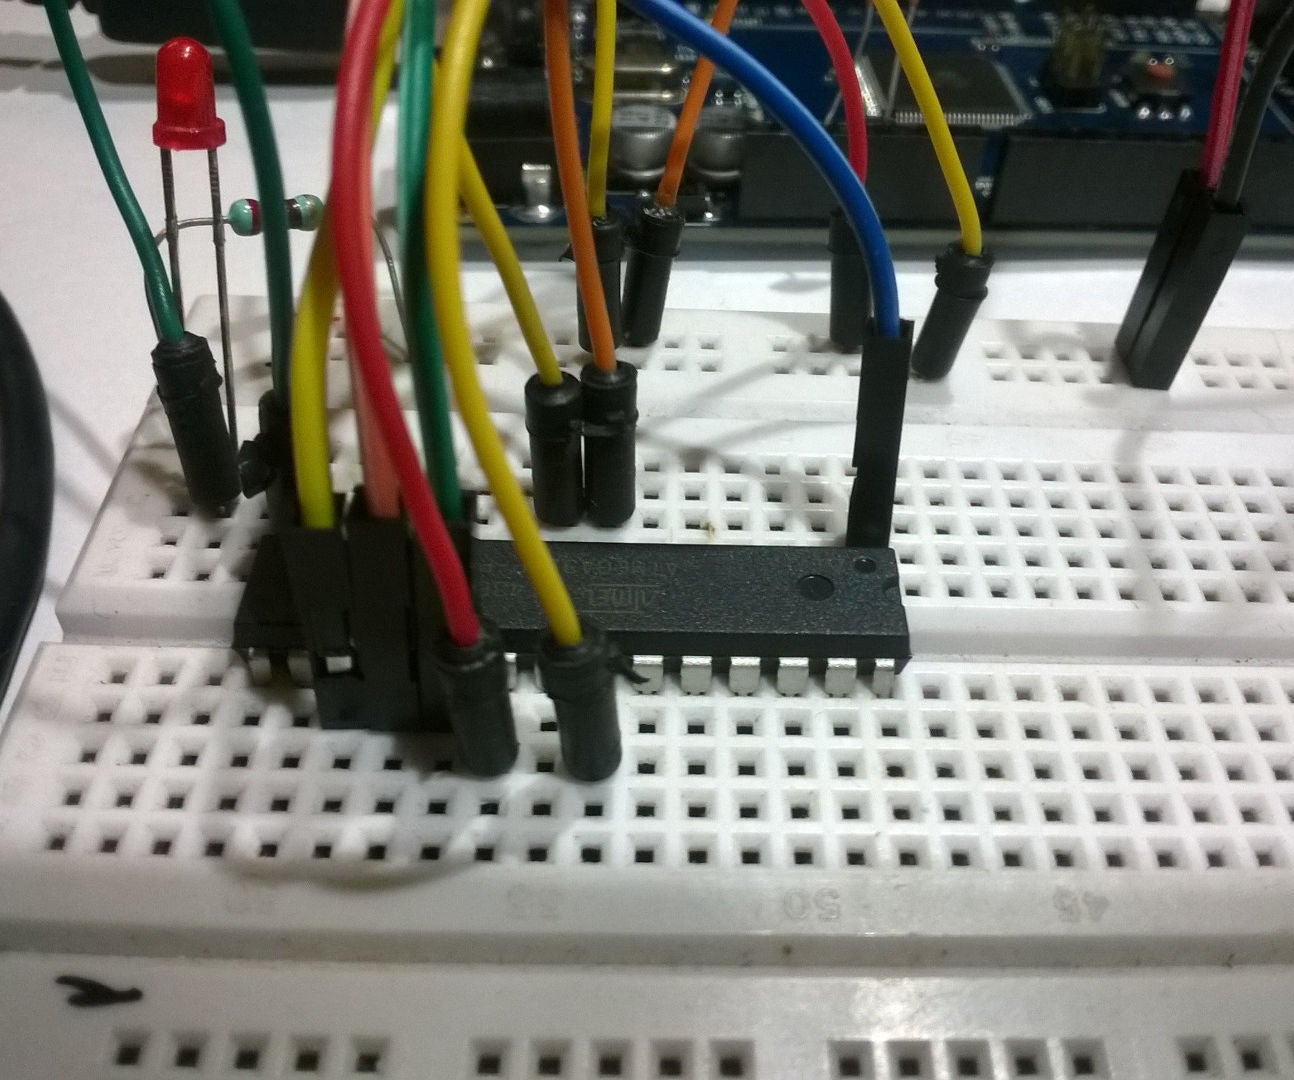 How To Change Fuse Bits Of Avr Atmega328p 8bit Microcontroller Configure Watchdog Timers Atmega16 Using Arduino 7 Steps